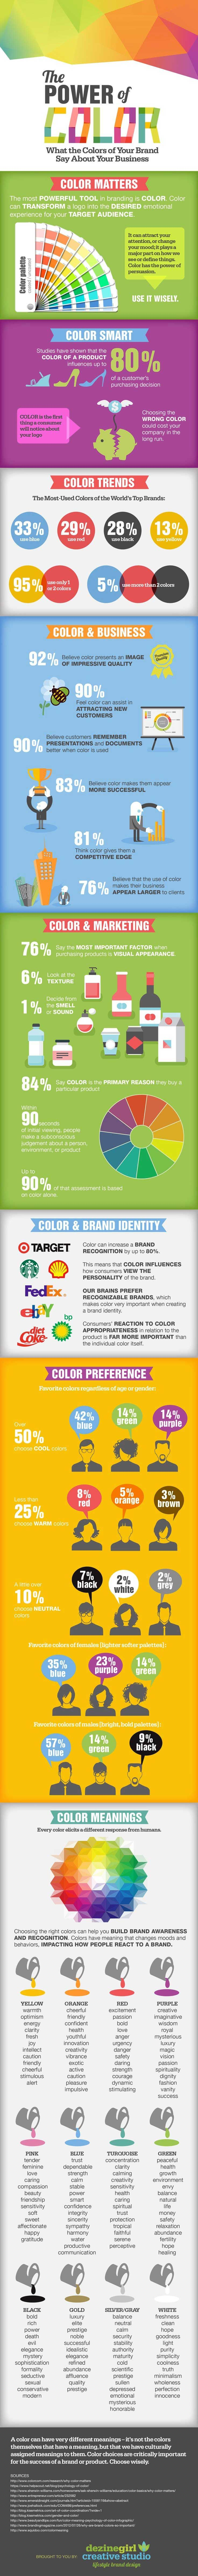 [INFOGRAPHIC] The Power of Color: Trends; Tool; Image; Marketing; Branding; Preferences; Meanings; Details.